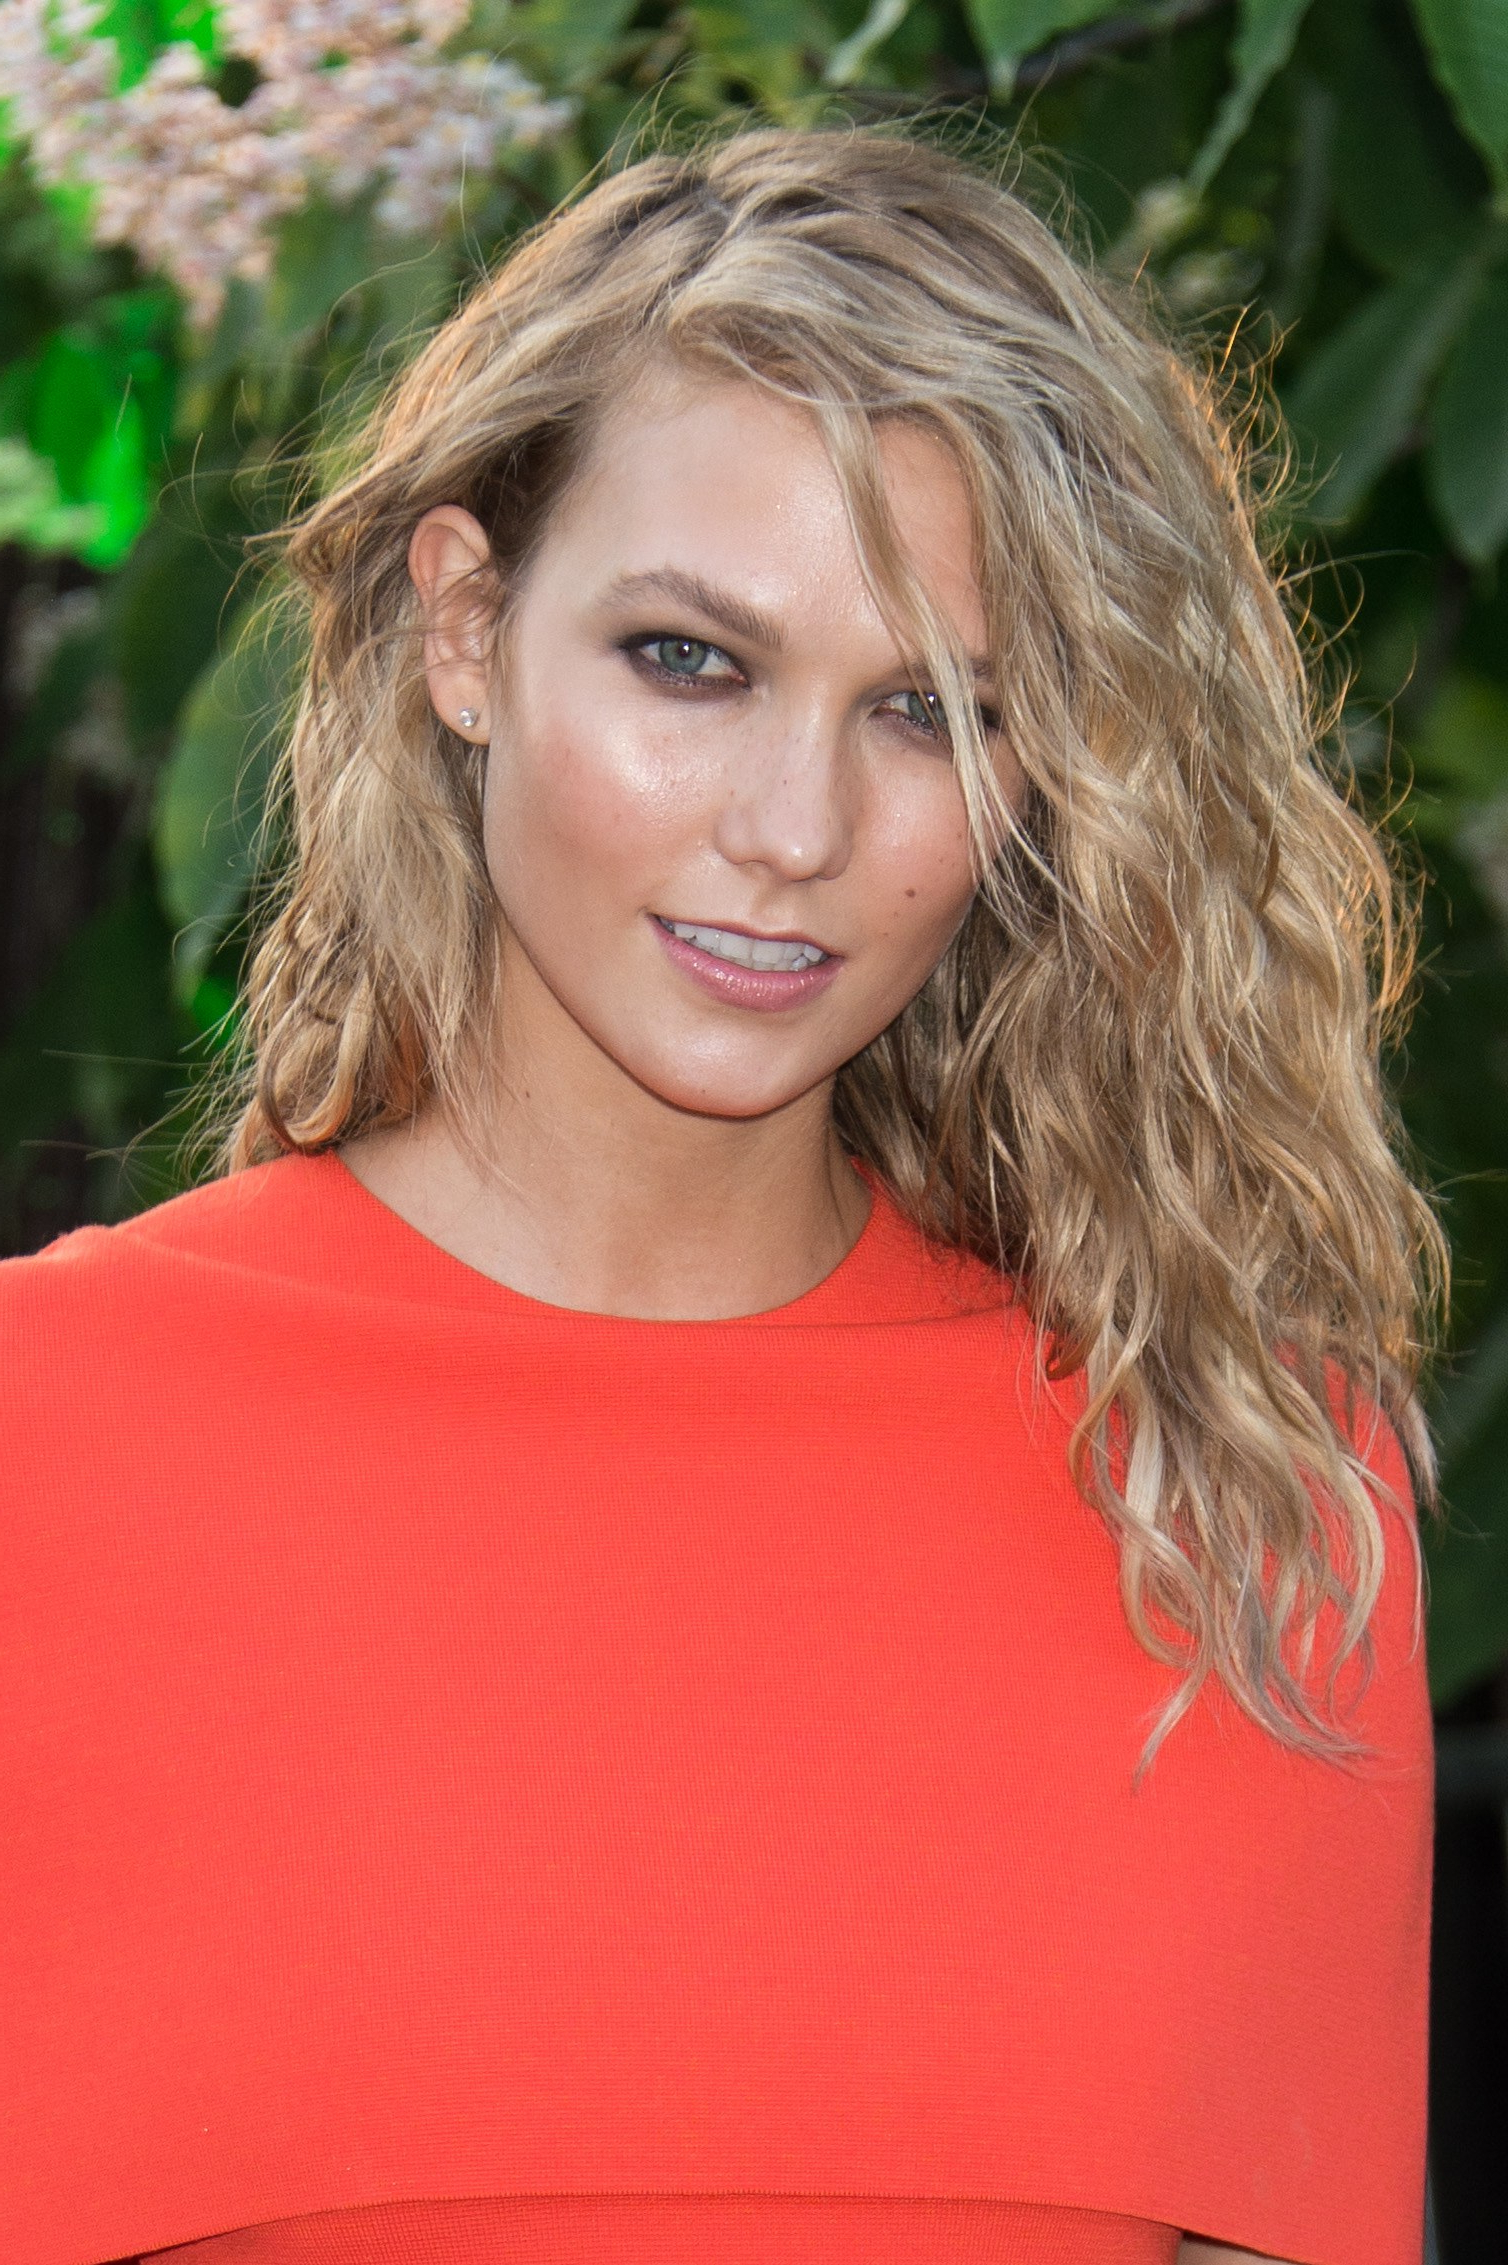 Karlie Kloss Shoulder Length Hair, Best, Easy Hairstyles For Medium For Current Karlie Kloss Medium Haircuts (View 11 of 20)